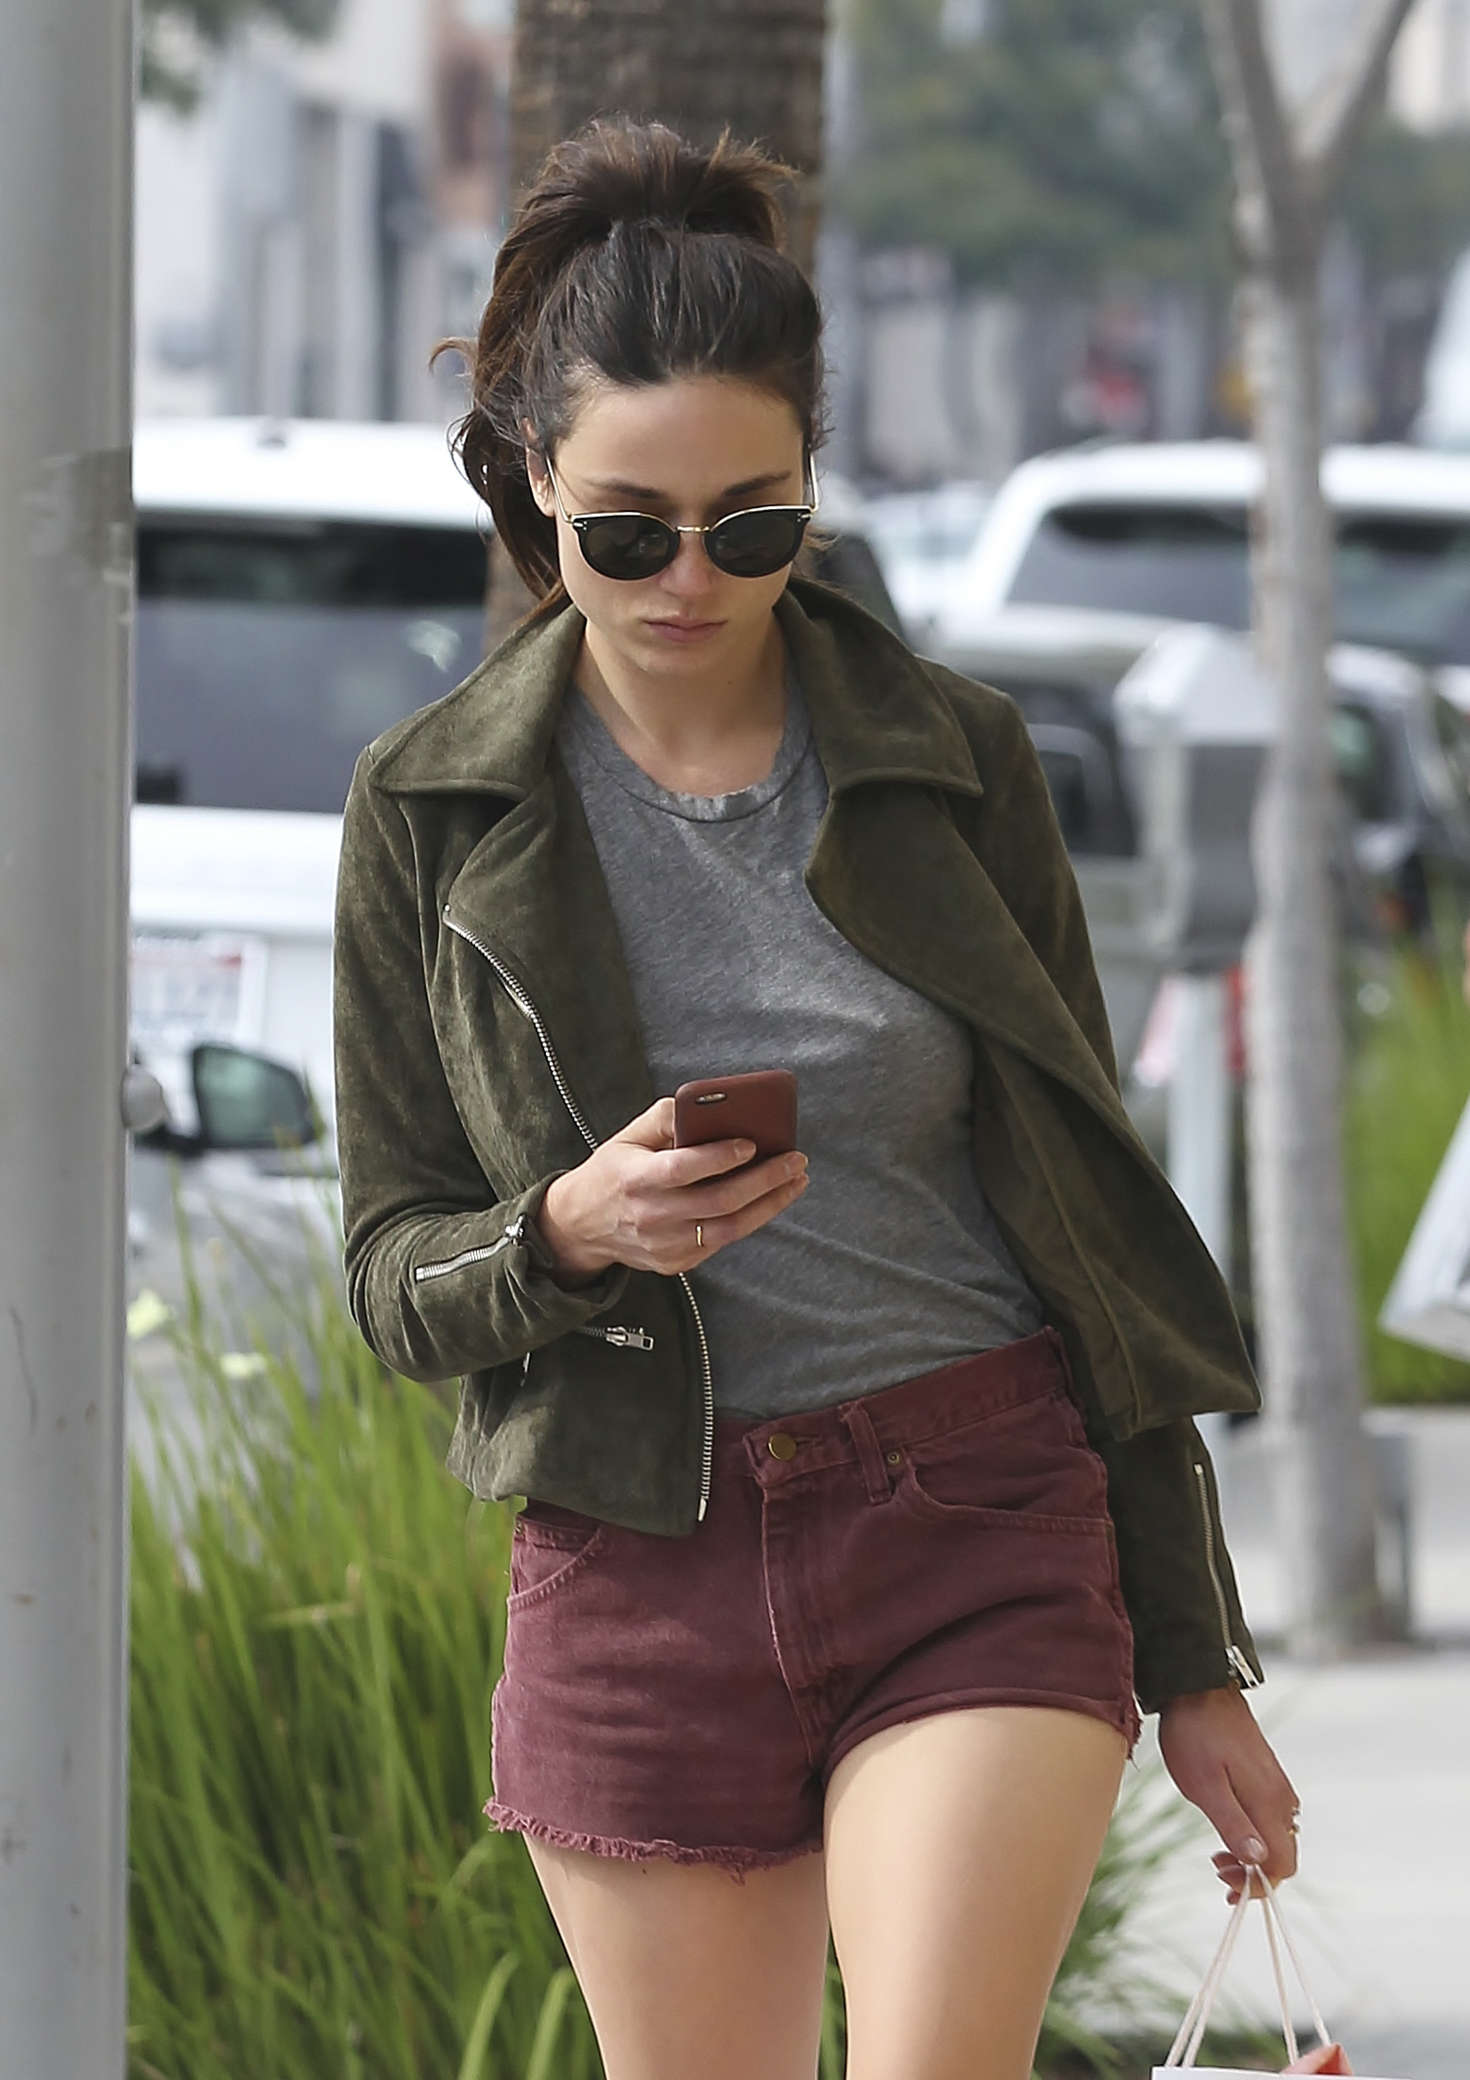 Crystal Reed in Shorts Shopping -08 - GotCeleb